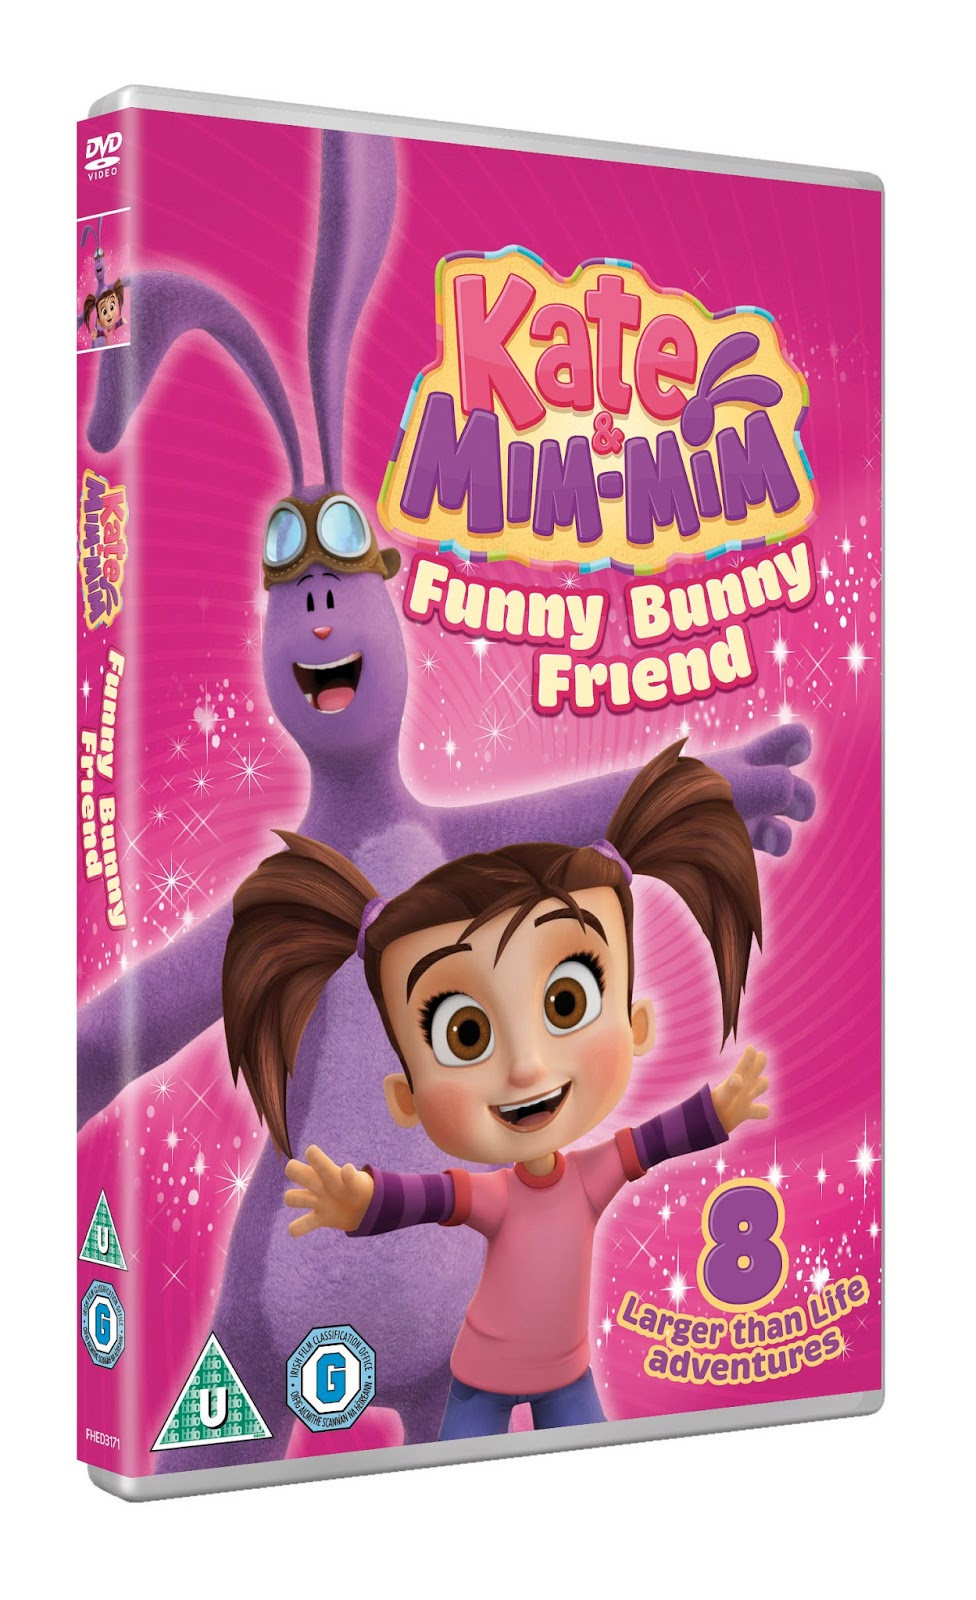 Kate and Mim-Mim: Funny Bunny Friend on DVD - Review and Giveaway